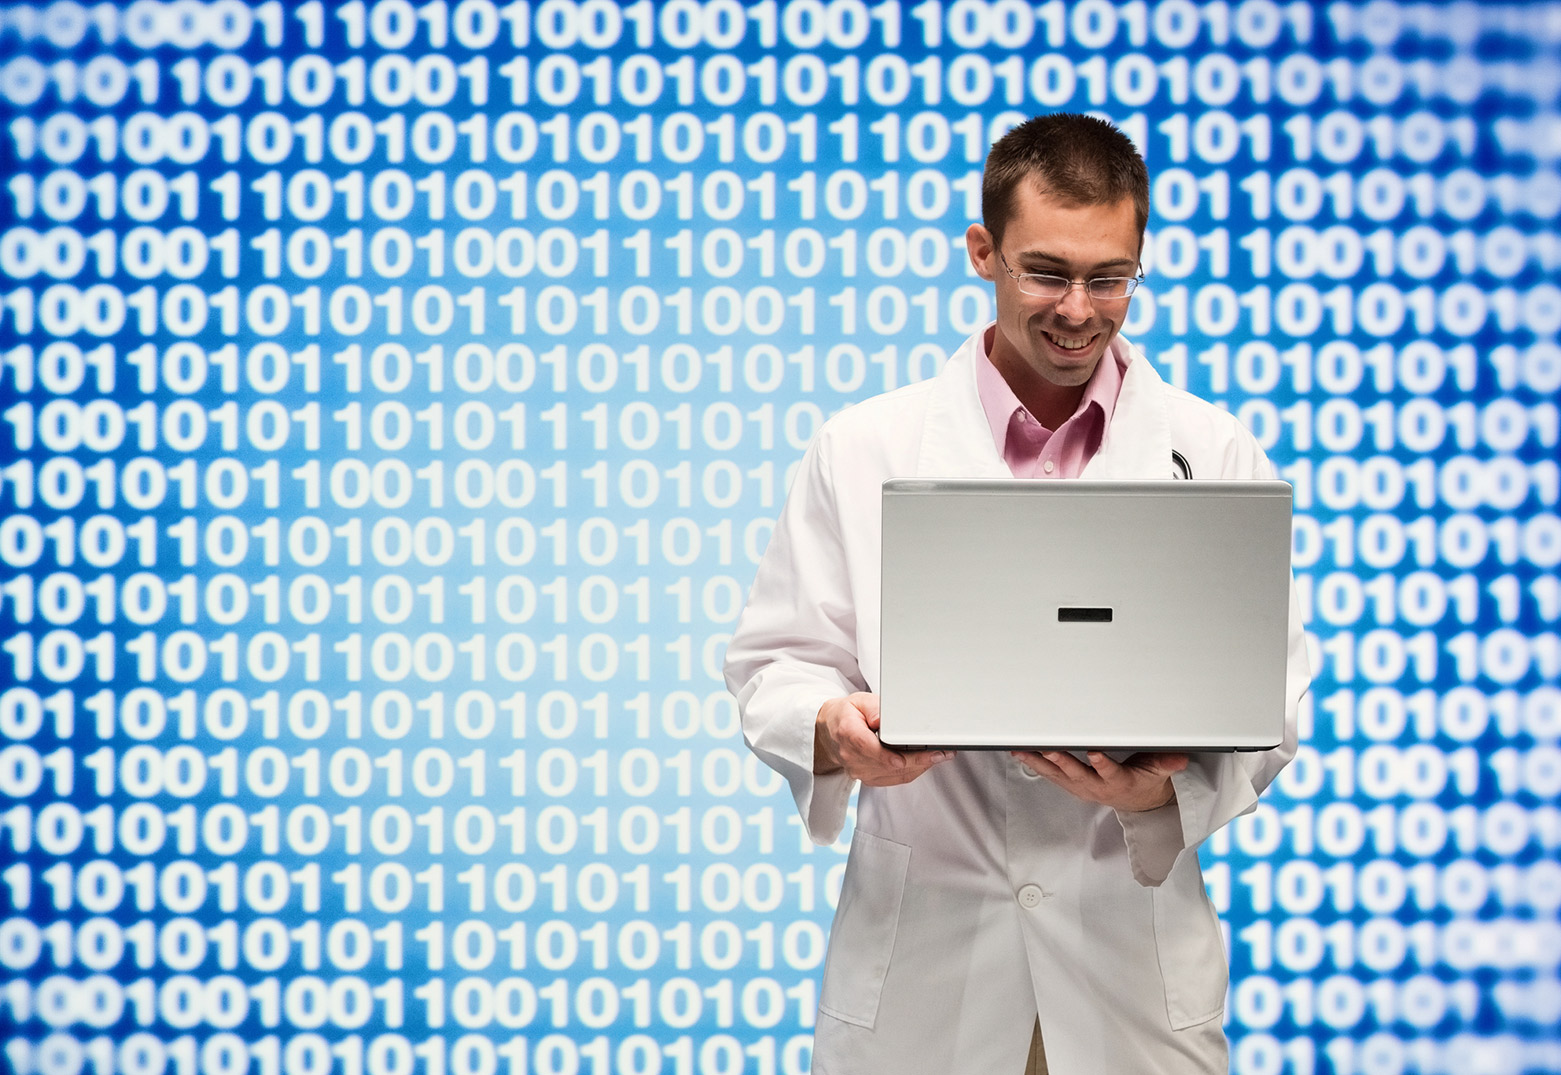 Doctor holding laptop with binary numbers in the background symbolizing data.